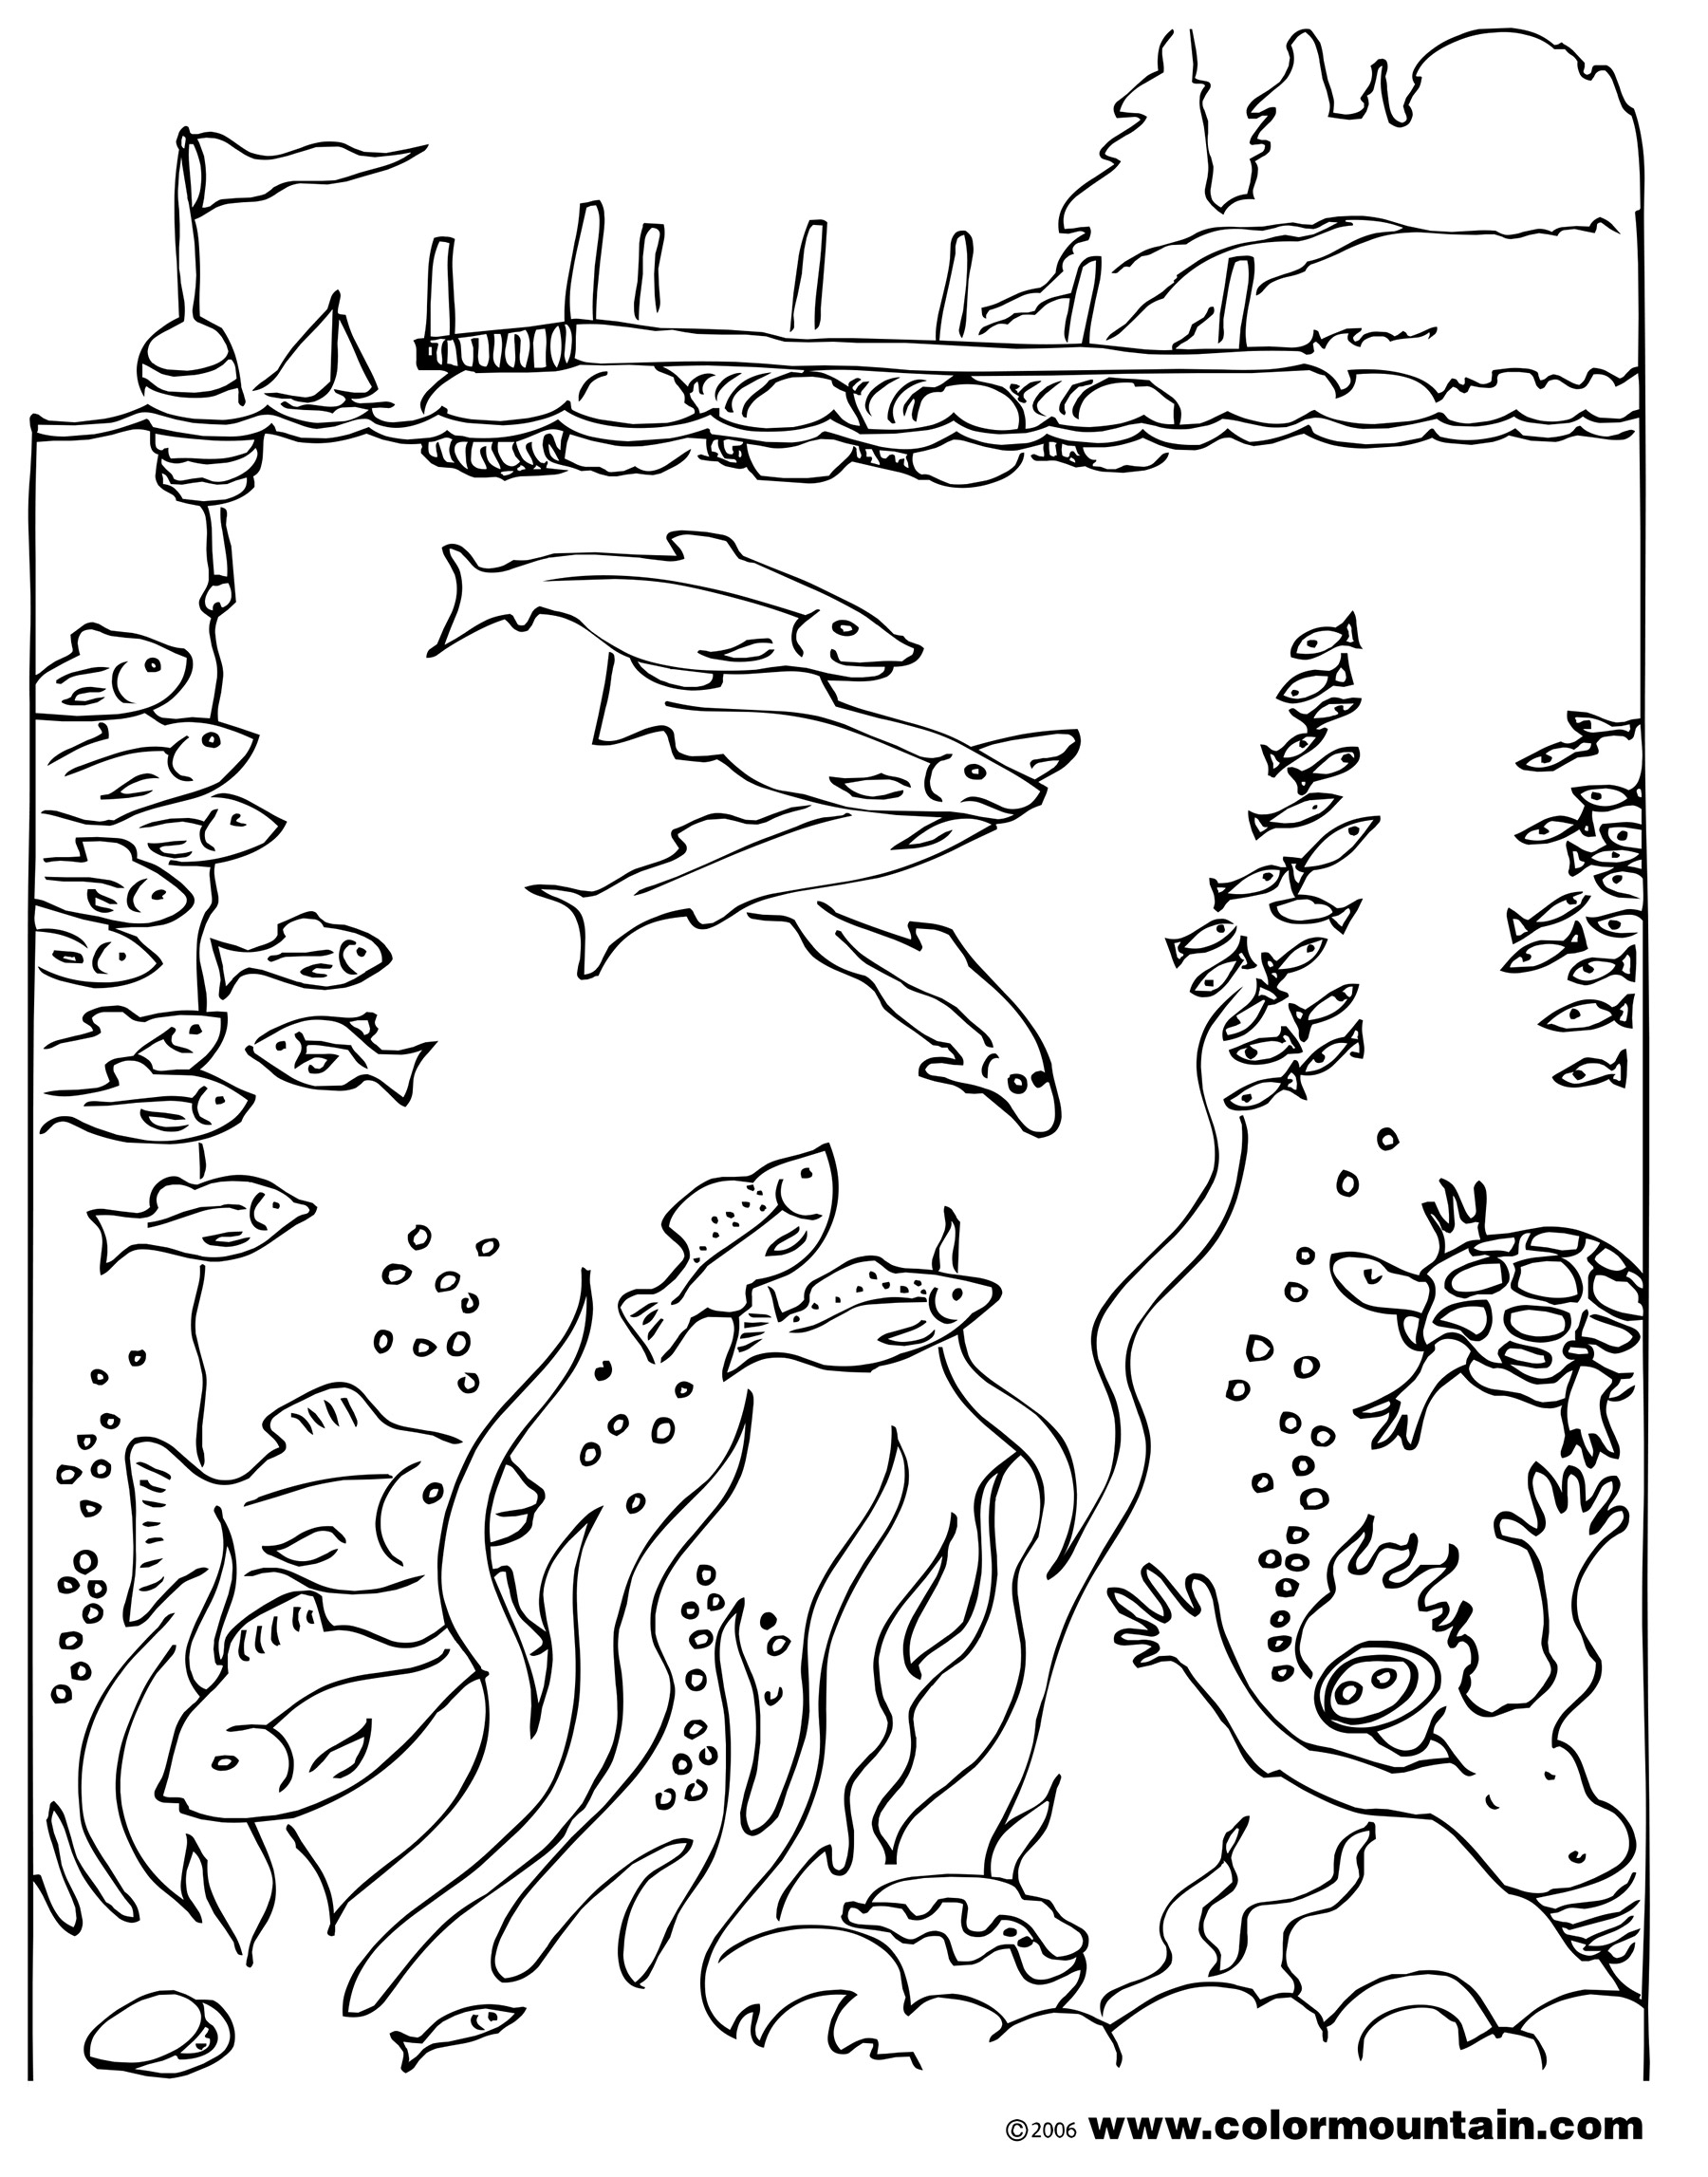 Deep Sea Coloring Pages At Getcolorings